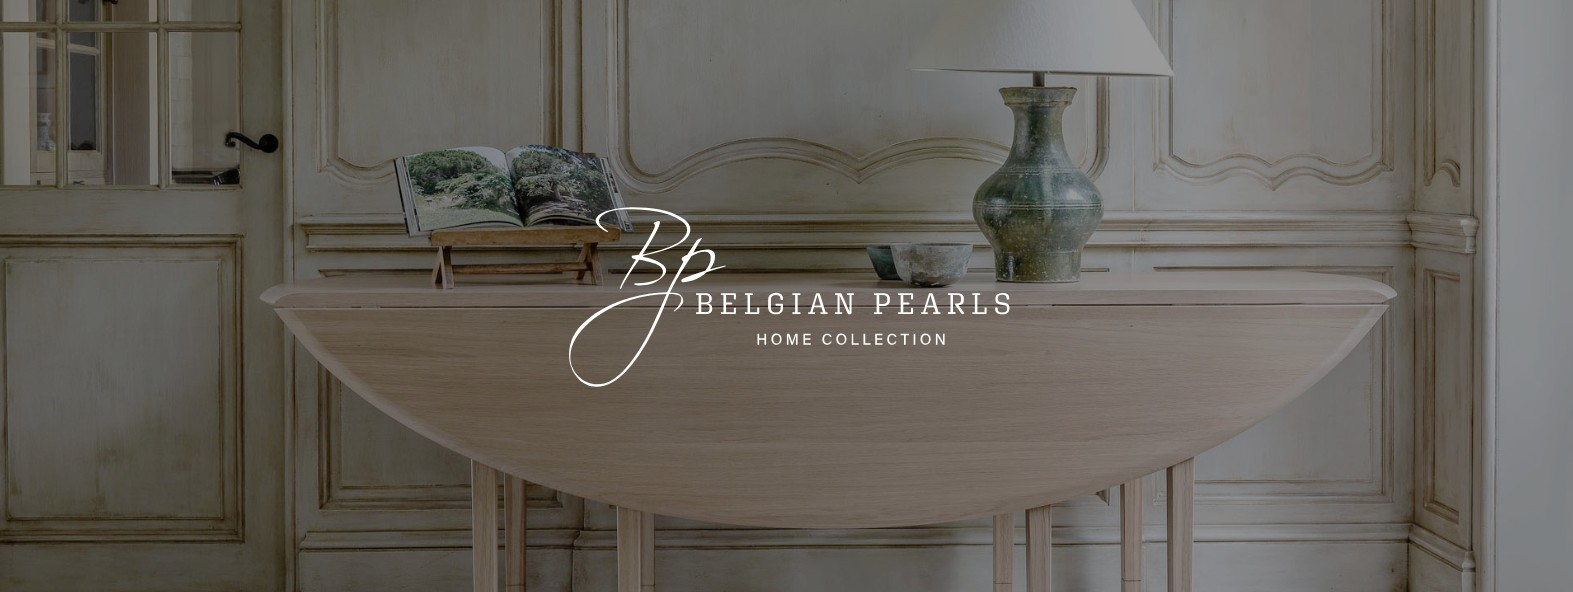 Belgian Pearls Home Collection Belgian Pearls